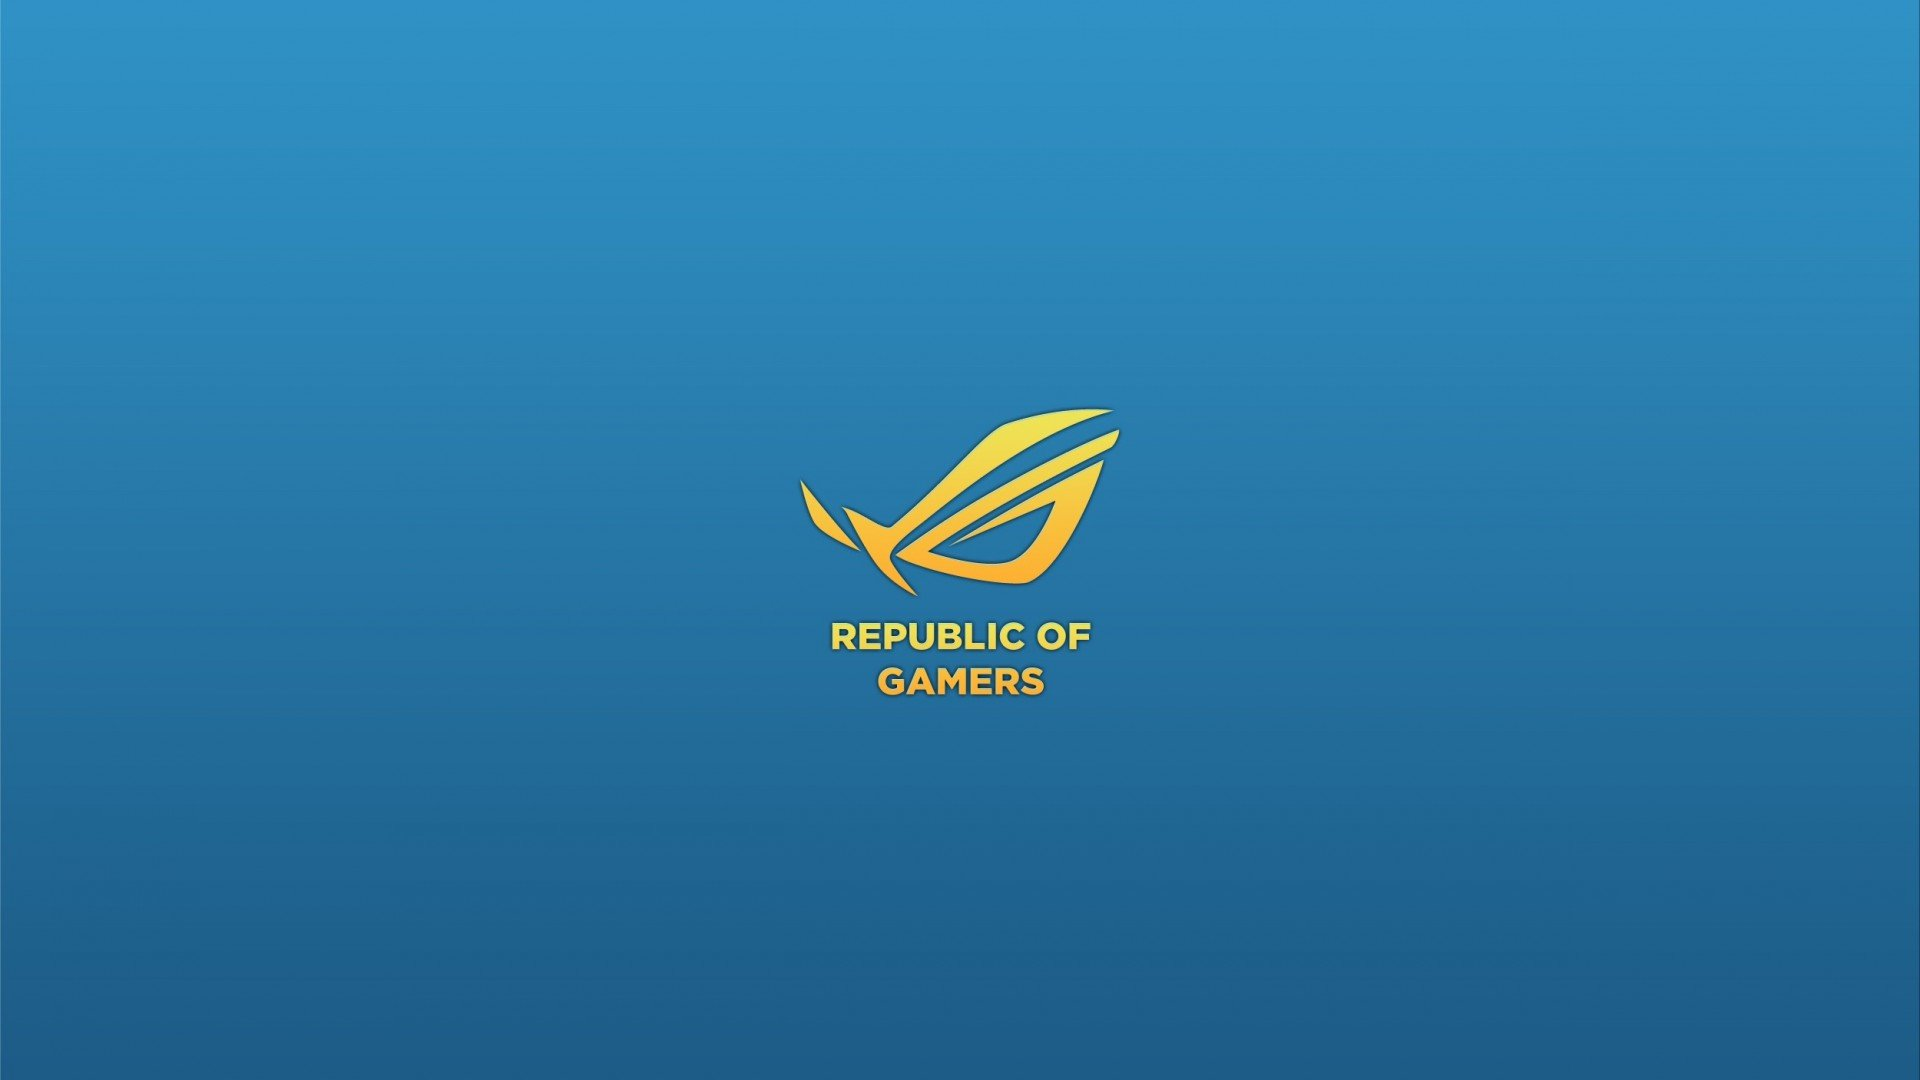 ASUS REPUBLIC GAMERS computer game wallpaper 1920x1080 398112 1920x1080